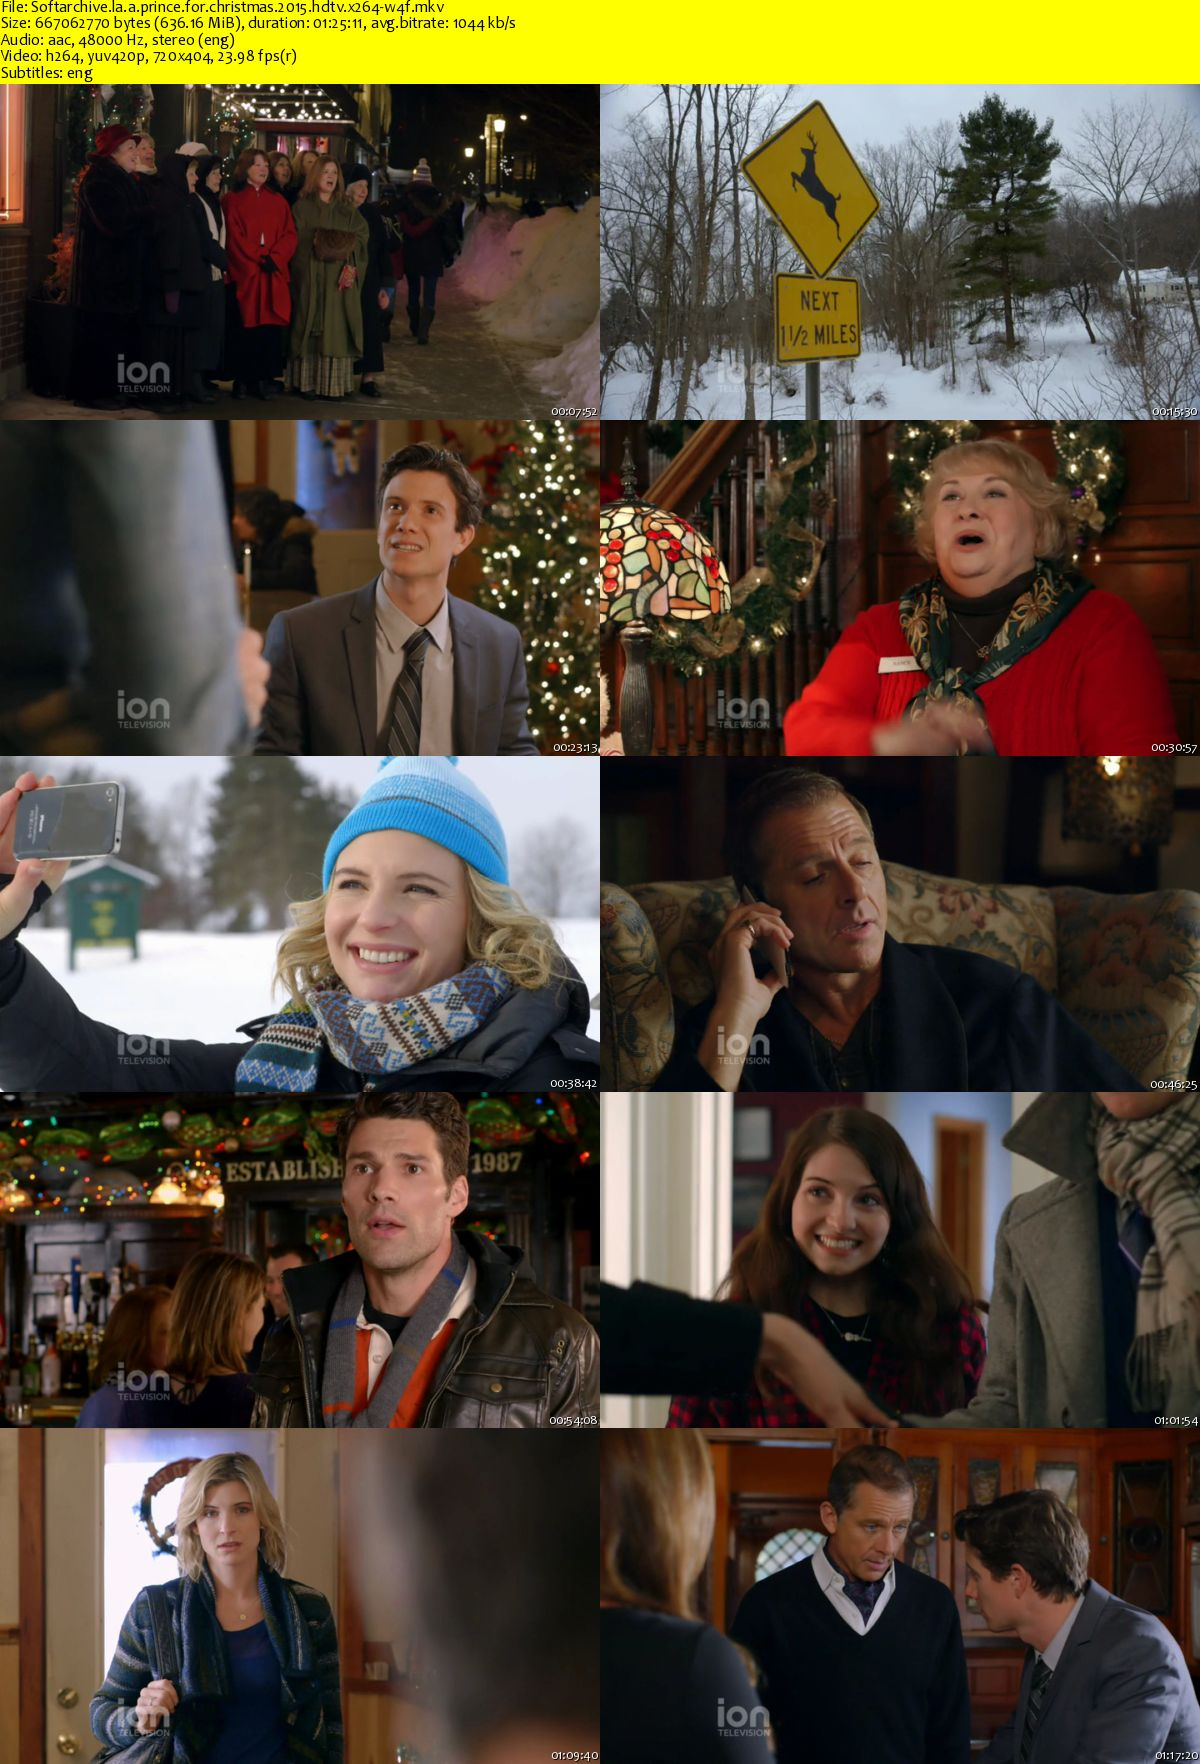 Christmas 2015 HDTV x264-W4F - SoftArchive